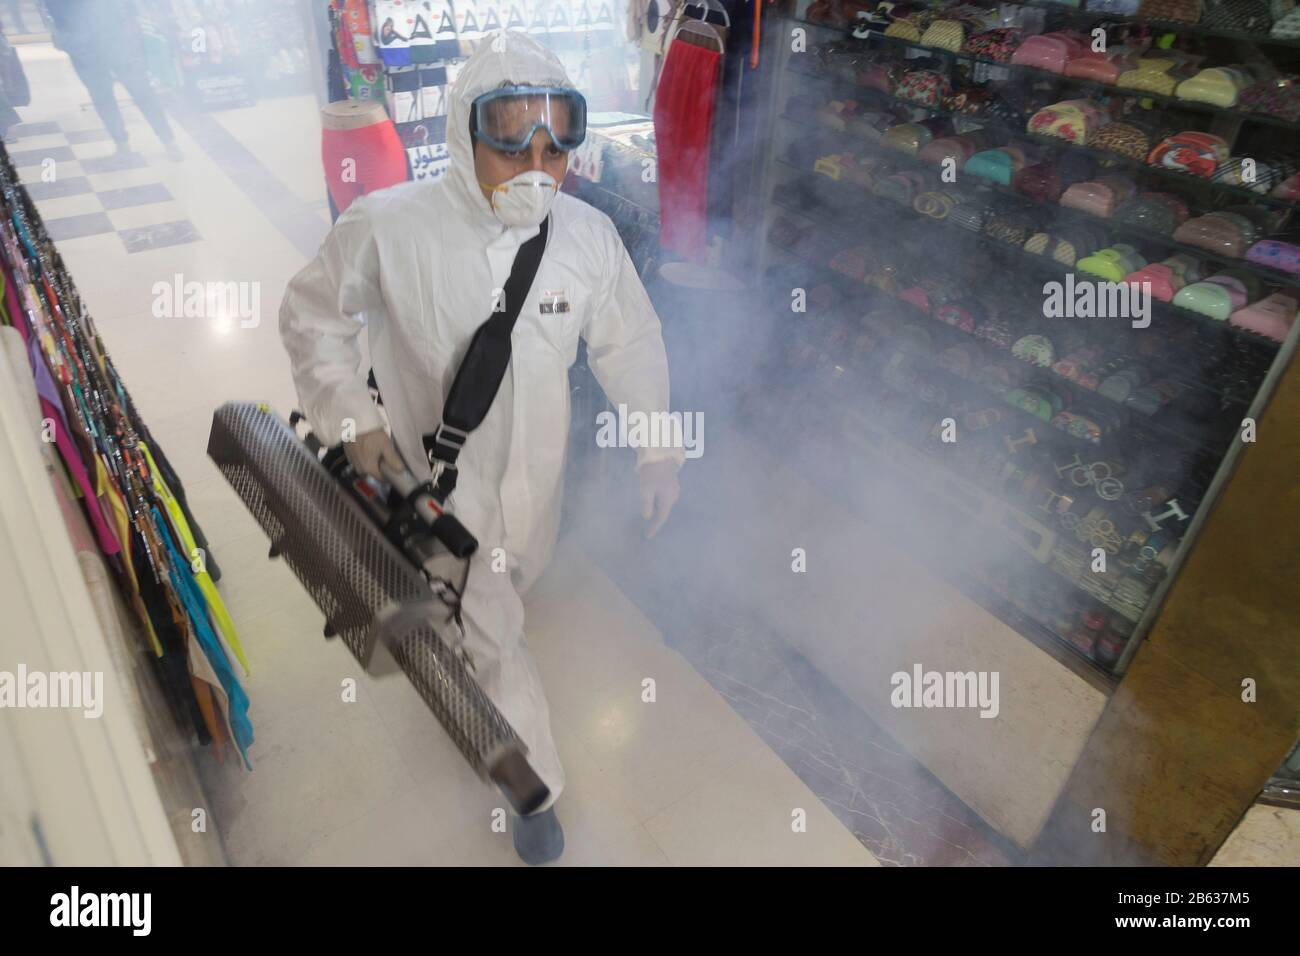 Tehran, Iran. 6th Mar, 2020. Firefighter teams with protective suits disinfect the Tajrish Bazaar shopping center as a precaution to the coronavirus (Covid-19) in Tehran. Iranian officials canceled Friday prayer for the second week due to concerns over the spread of coronavirus and COVID-19. According to the last report by the Ministry of Health, there are 4,747 COVID-19 cases in Iran. 147 people have died so far. A Health Ministry spokesman warned authorities could use unspecified 'force' to halt travel between major cities. Credit: Rouzbeh Fouladi/ZUMA Wire/Alamy Live News Stock Photo